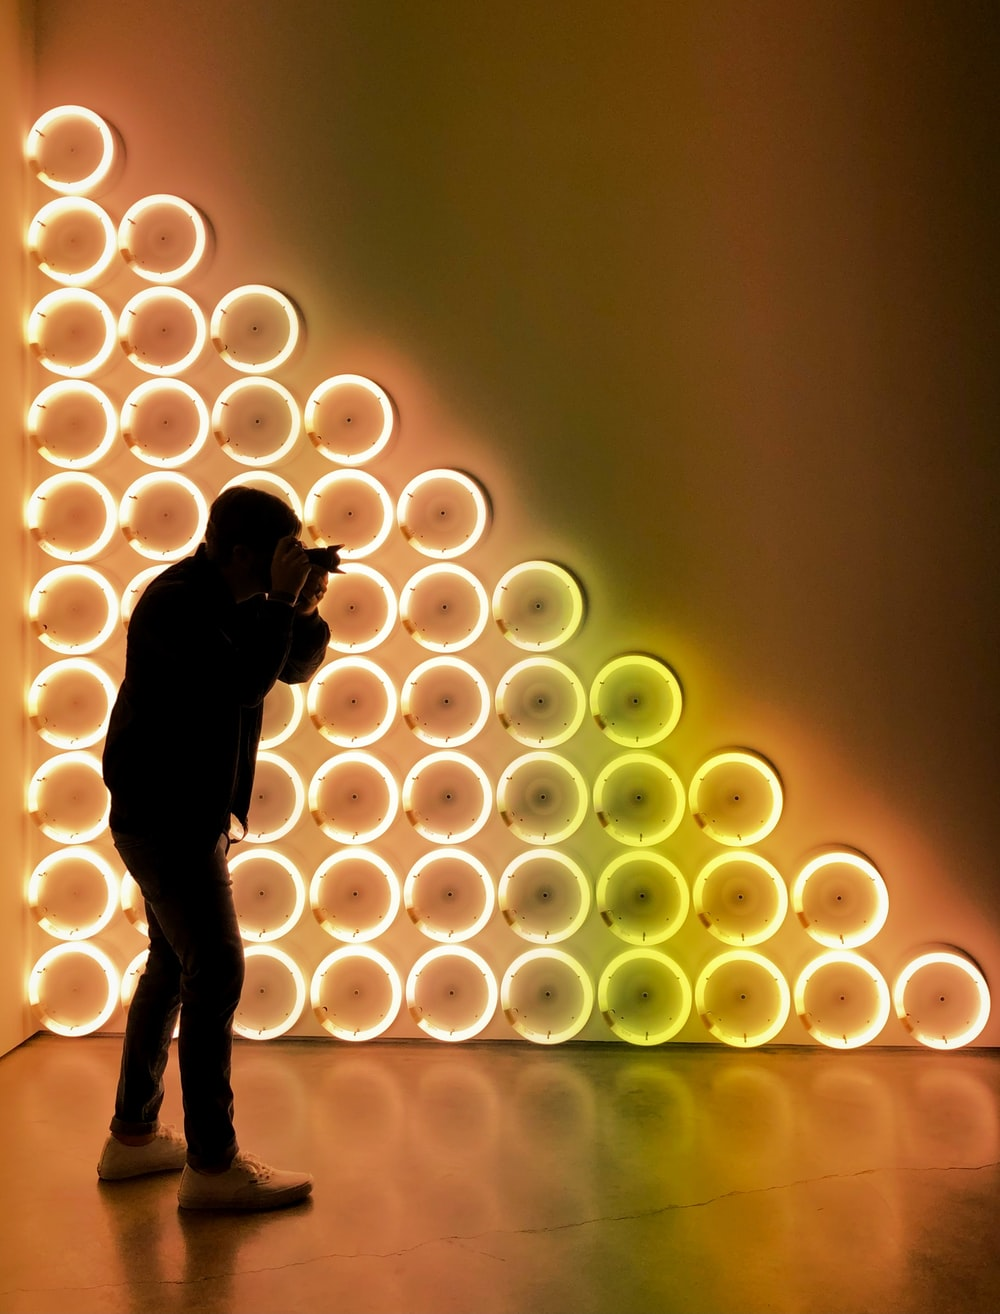 silhouette of woman standing in front of lighted wall